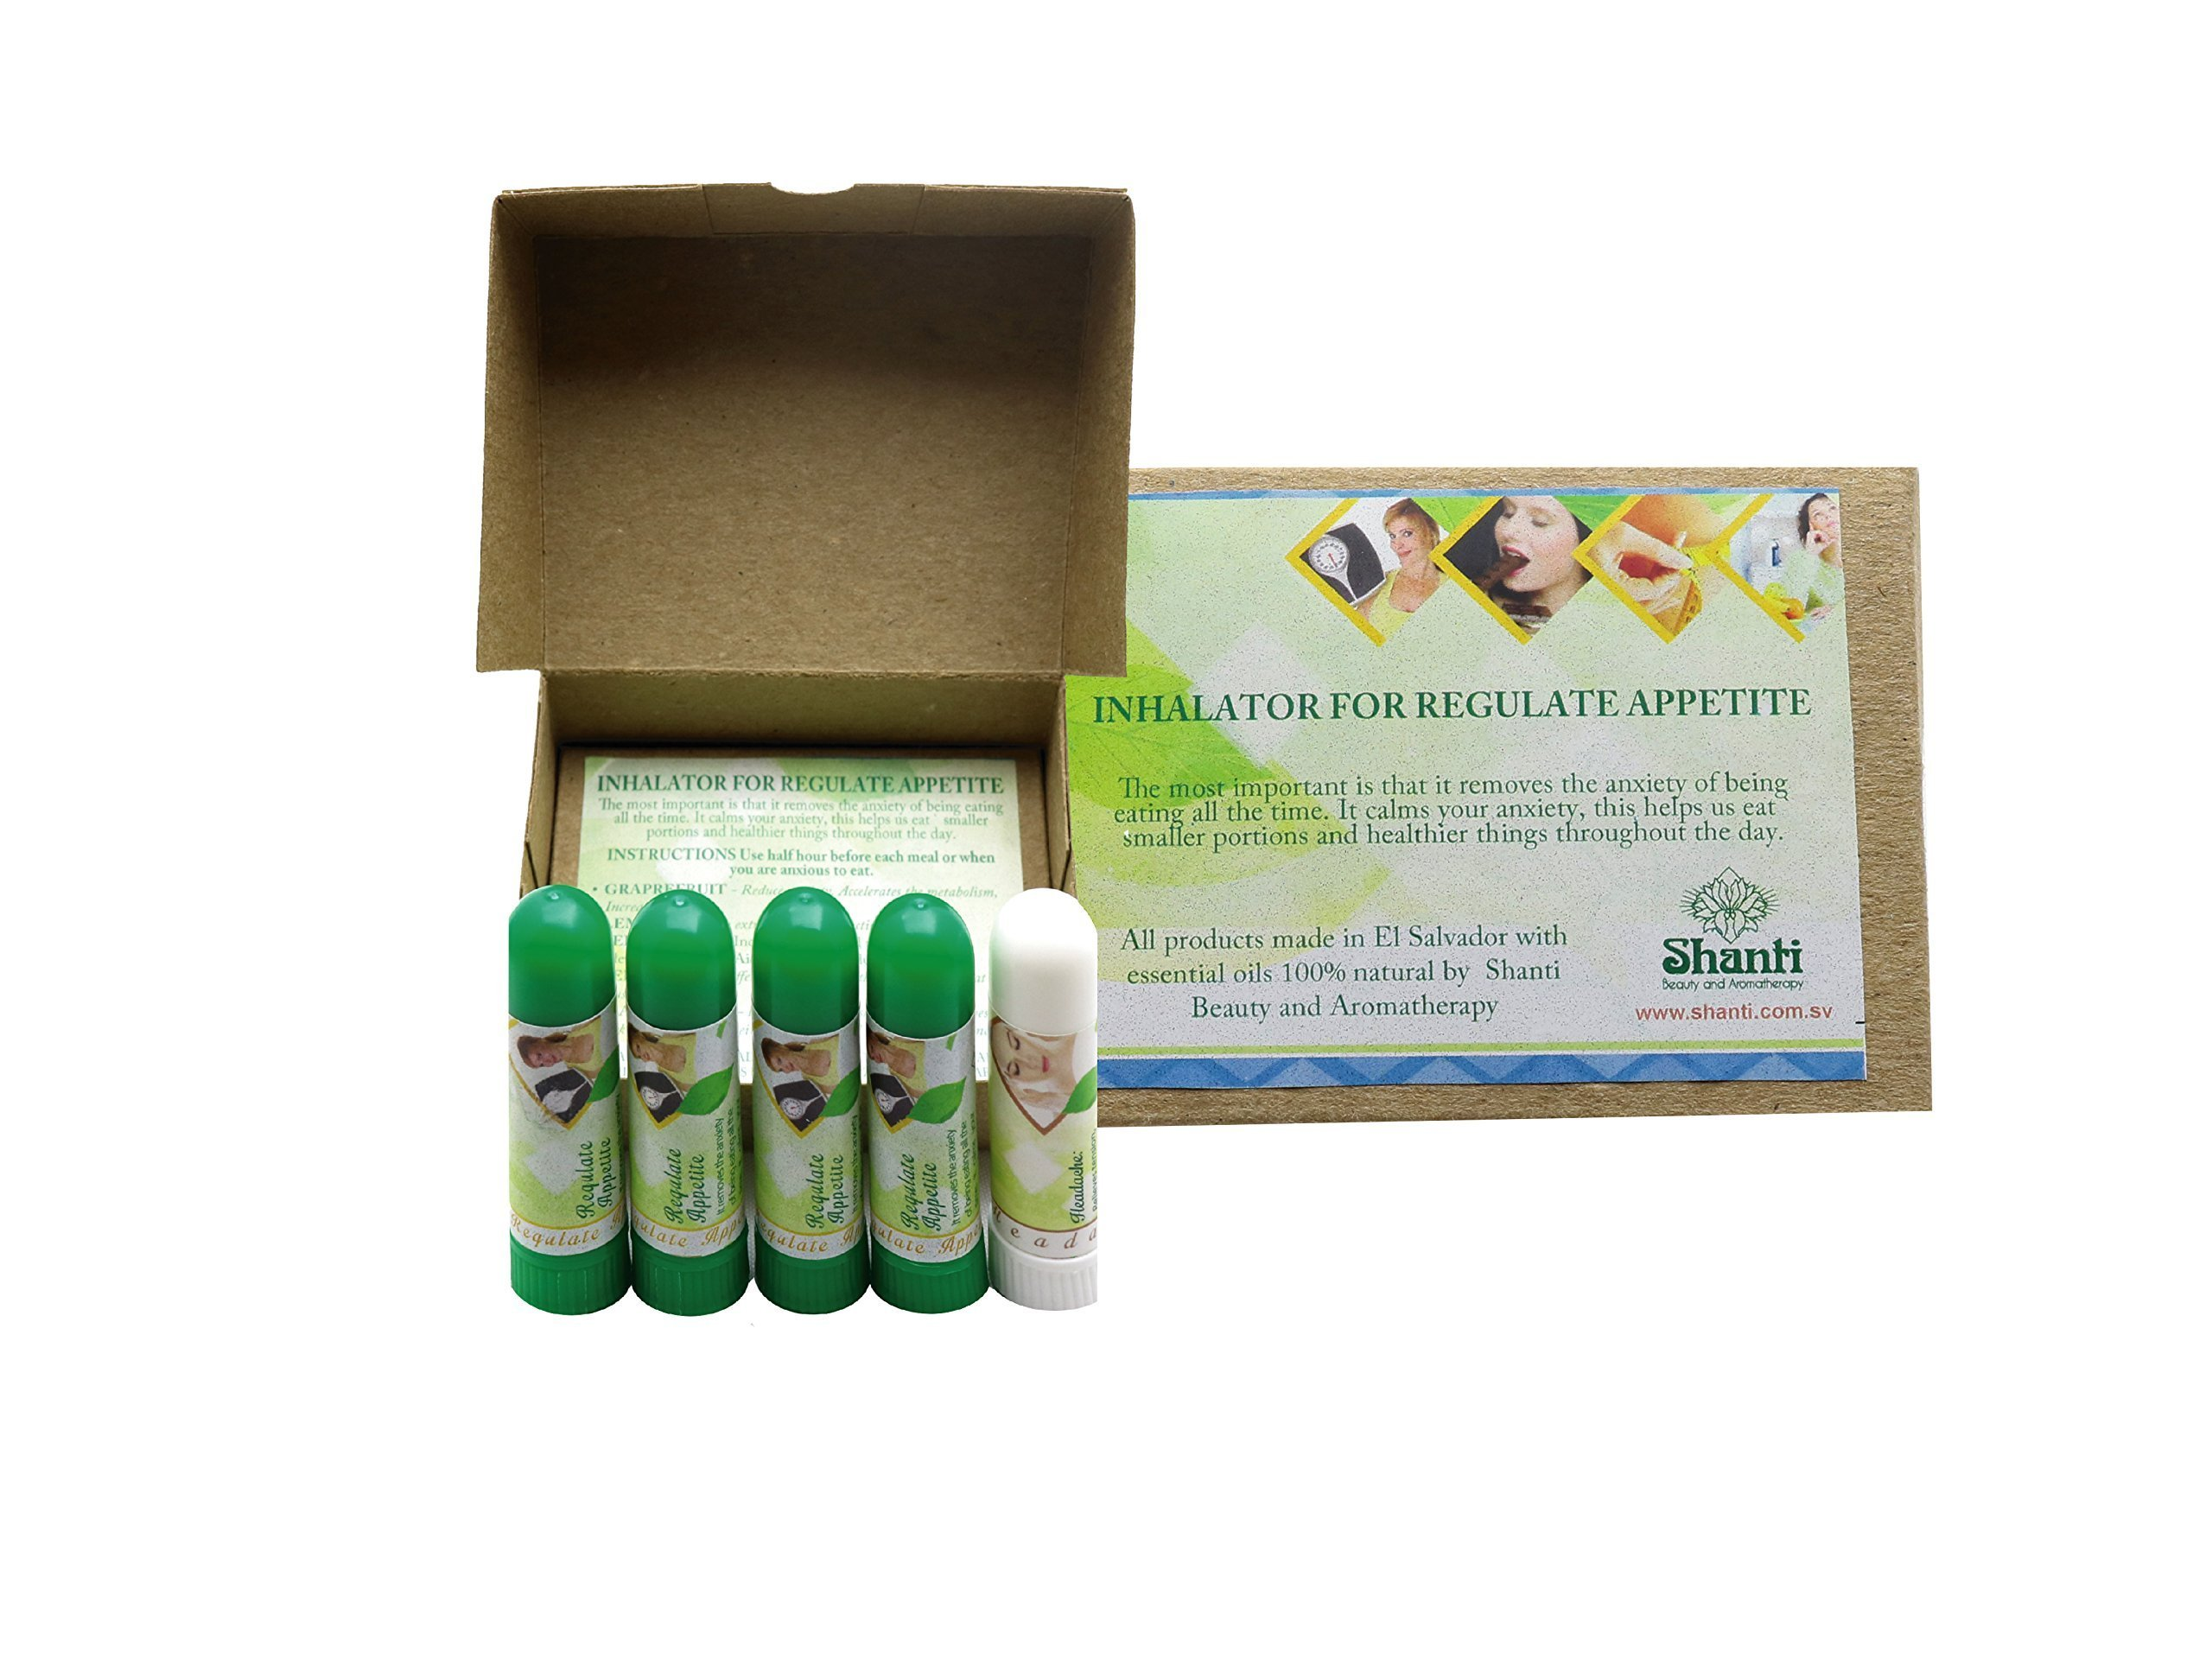 Appetite Control Inhaler 4 units pack FREE one inhaler of Head Clear